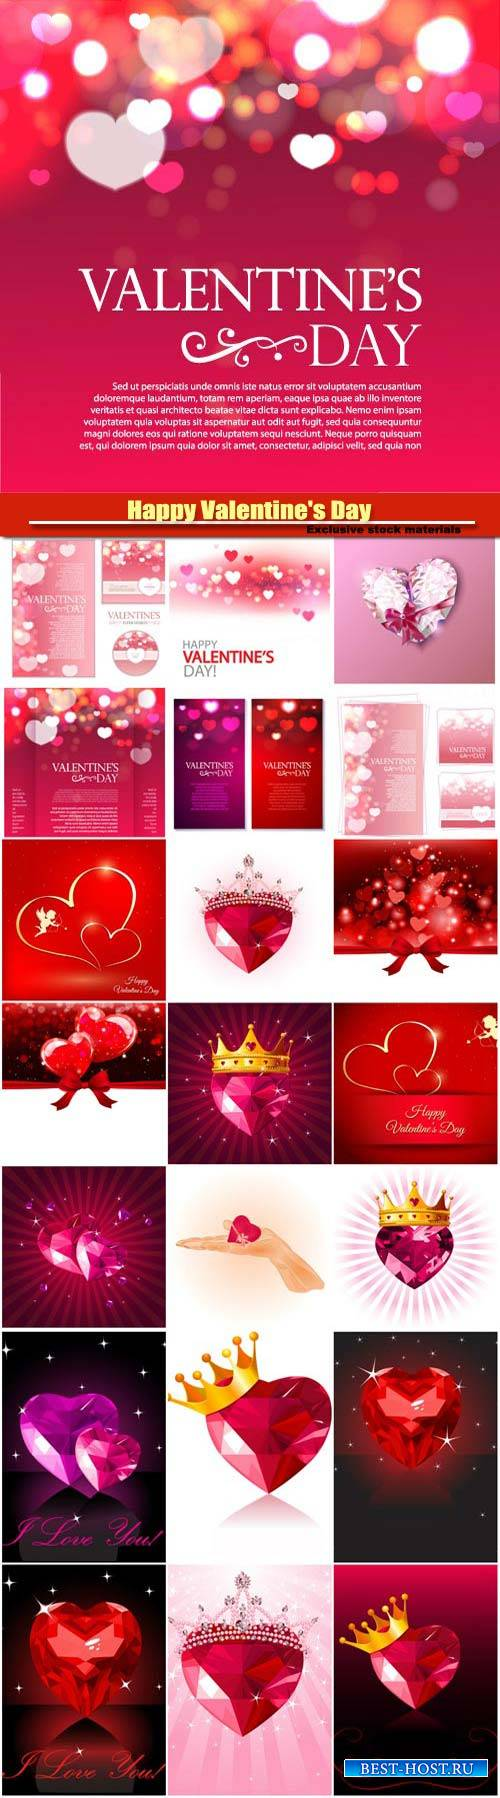 Happy Valentine's Day vector, hearts, romance, love #10